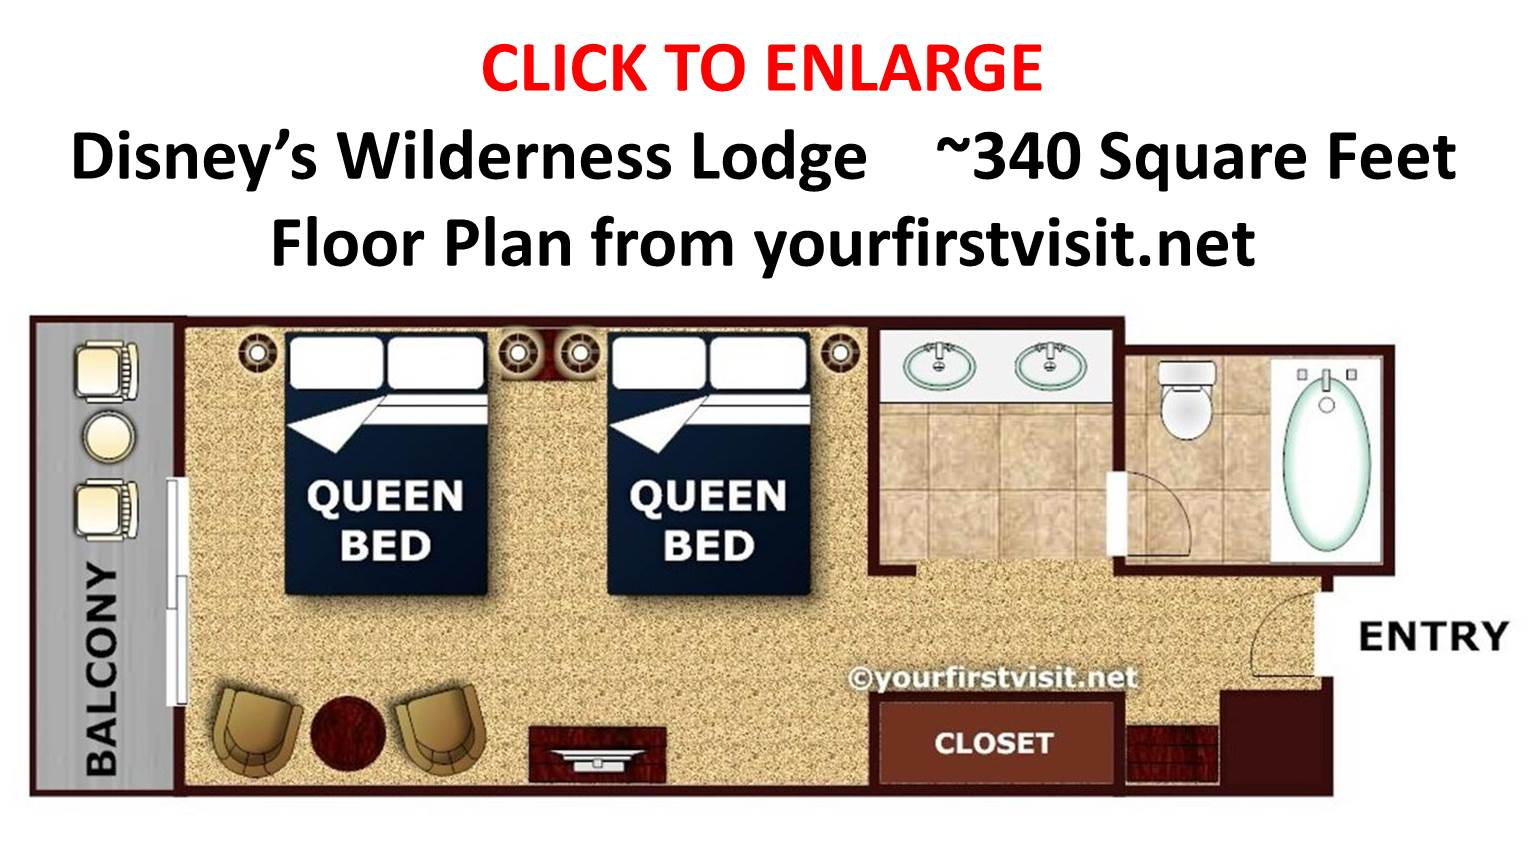 Fort Wilderness Cabins Floor Plan: Accommodations At Disney's Wilderness Lodge